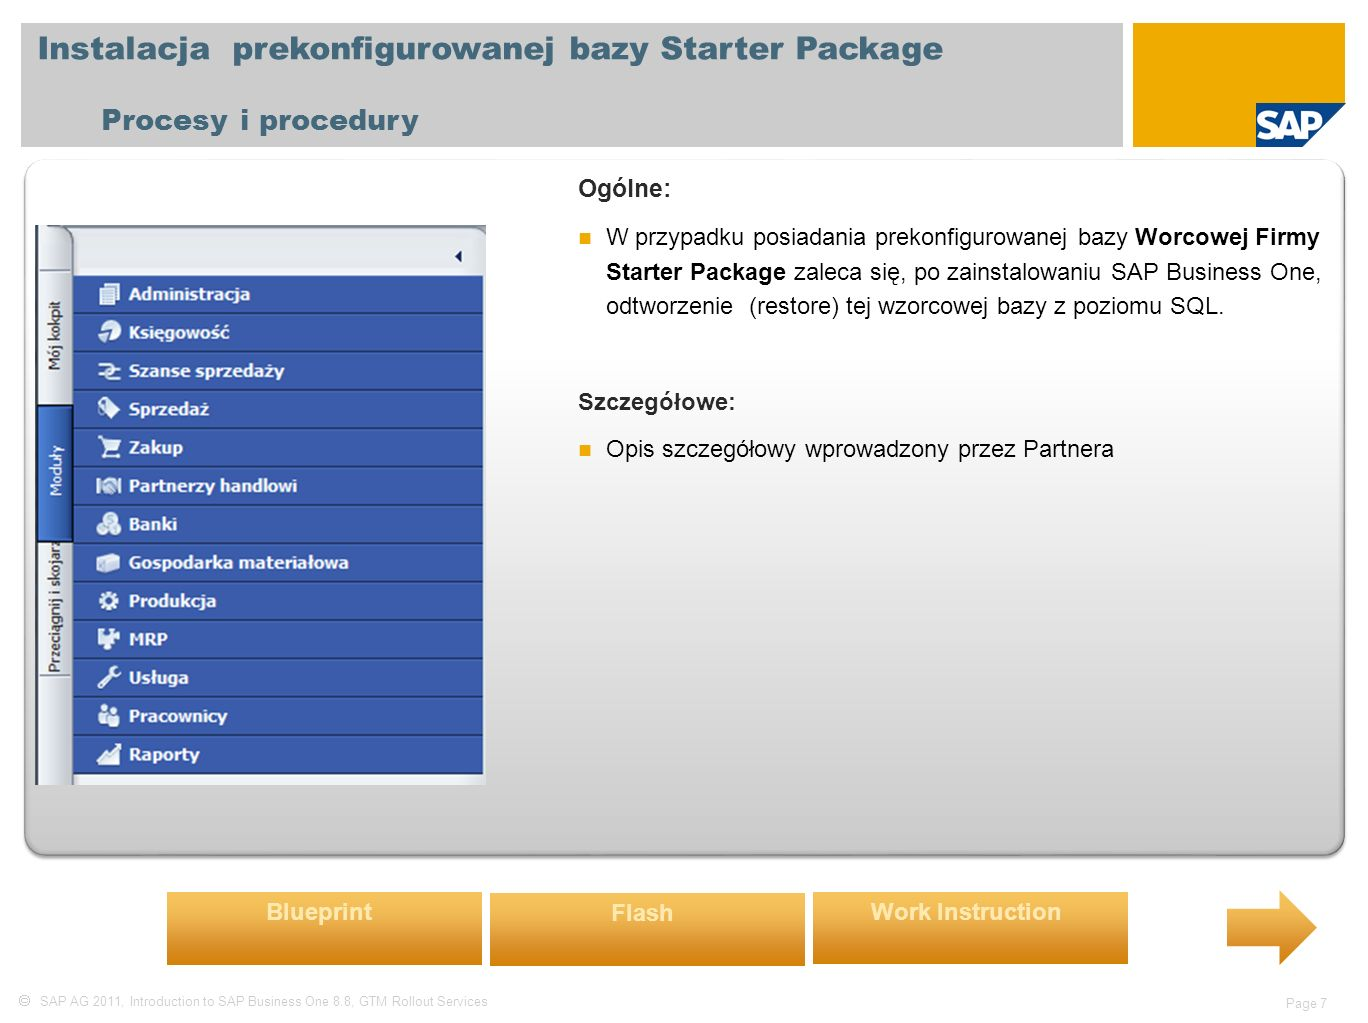  SAP AG 2011, Introduction to SAP Business One 8.8, GTM Rollout Services Page 7 Instalacja prekonfigurowanej bazy Starter Package Procesy i procedury